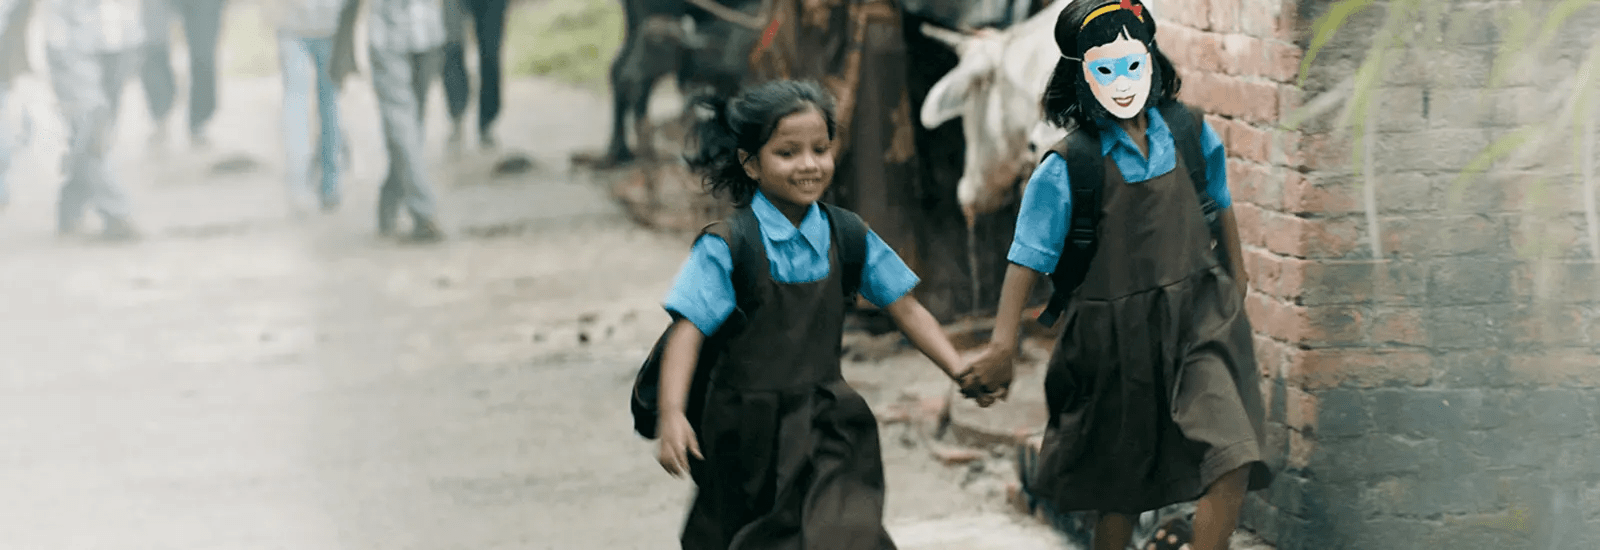 Social responsibilty - Kids going to school - The Himalaya Drug Company